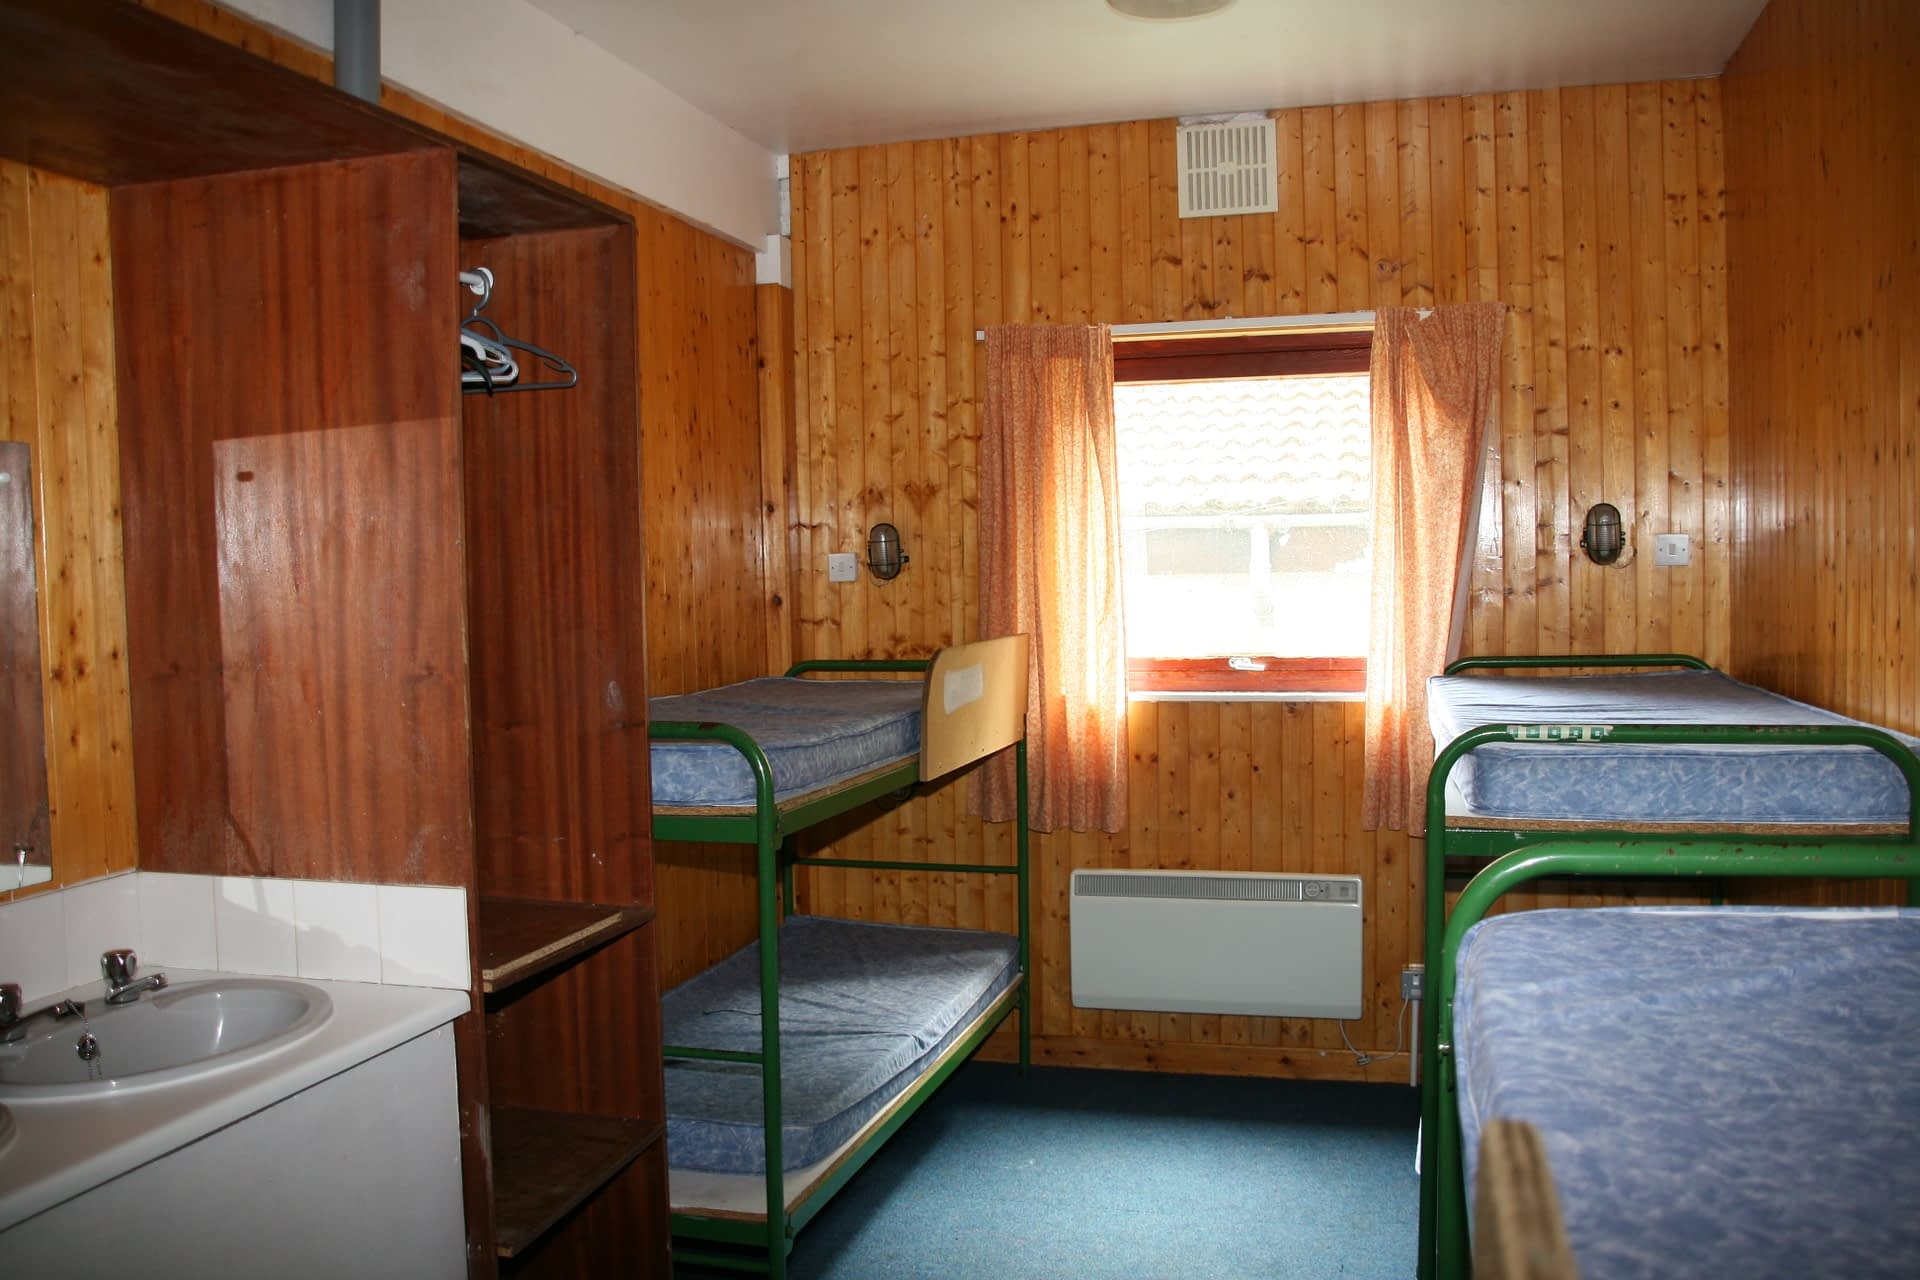 Chalet bedrooms at Bonaly